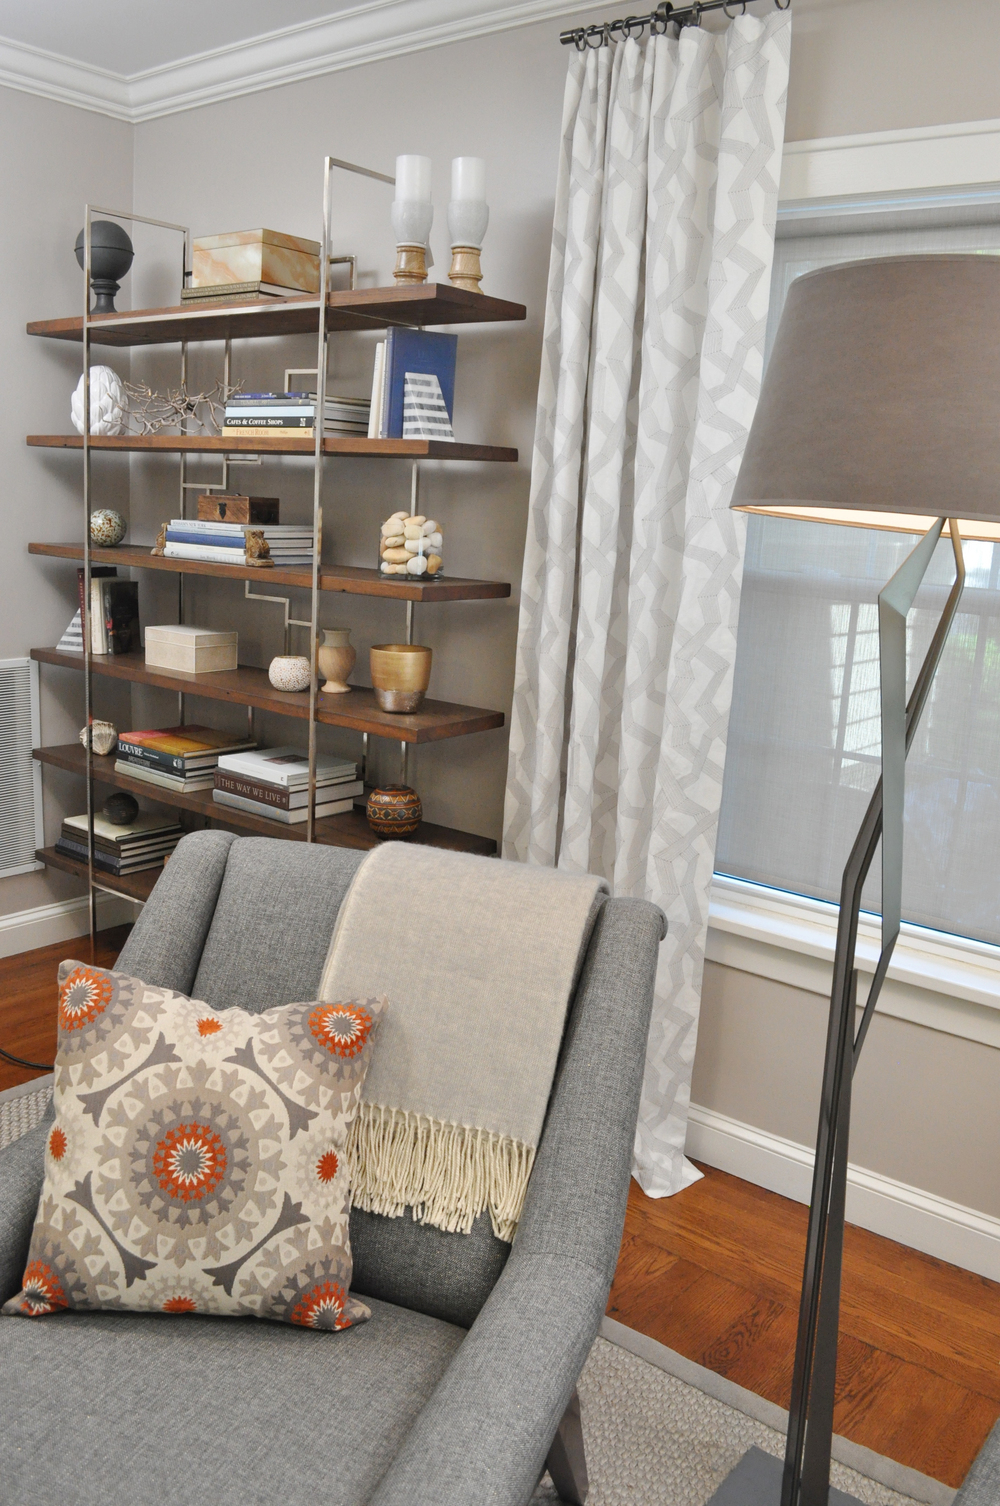 Kim A Mitchell_Design Lead_HGTV_Buying and Selling with The Property Brothers_Season 5_Episode 8_Living Room After_Hubbardton Forge Lamp_FoundryWood Shelving_Kontrast_Throw_8_31_2016 Airdate.jpg